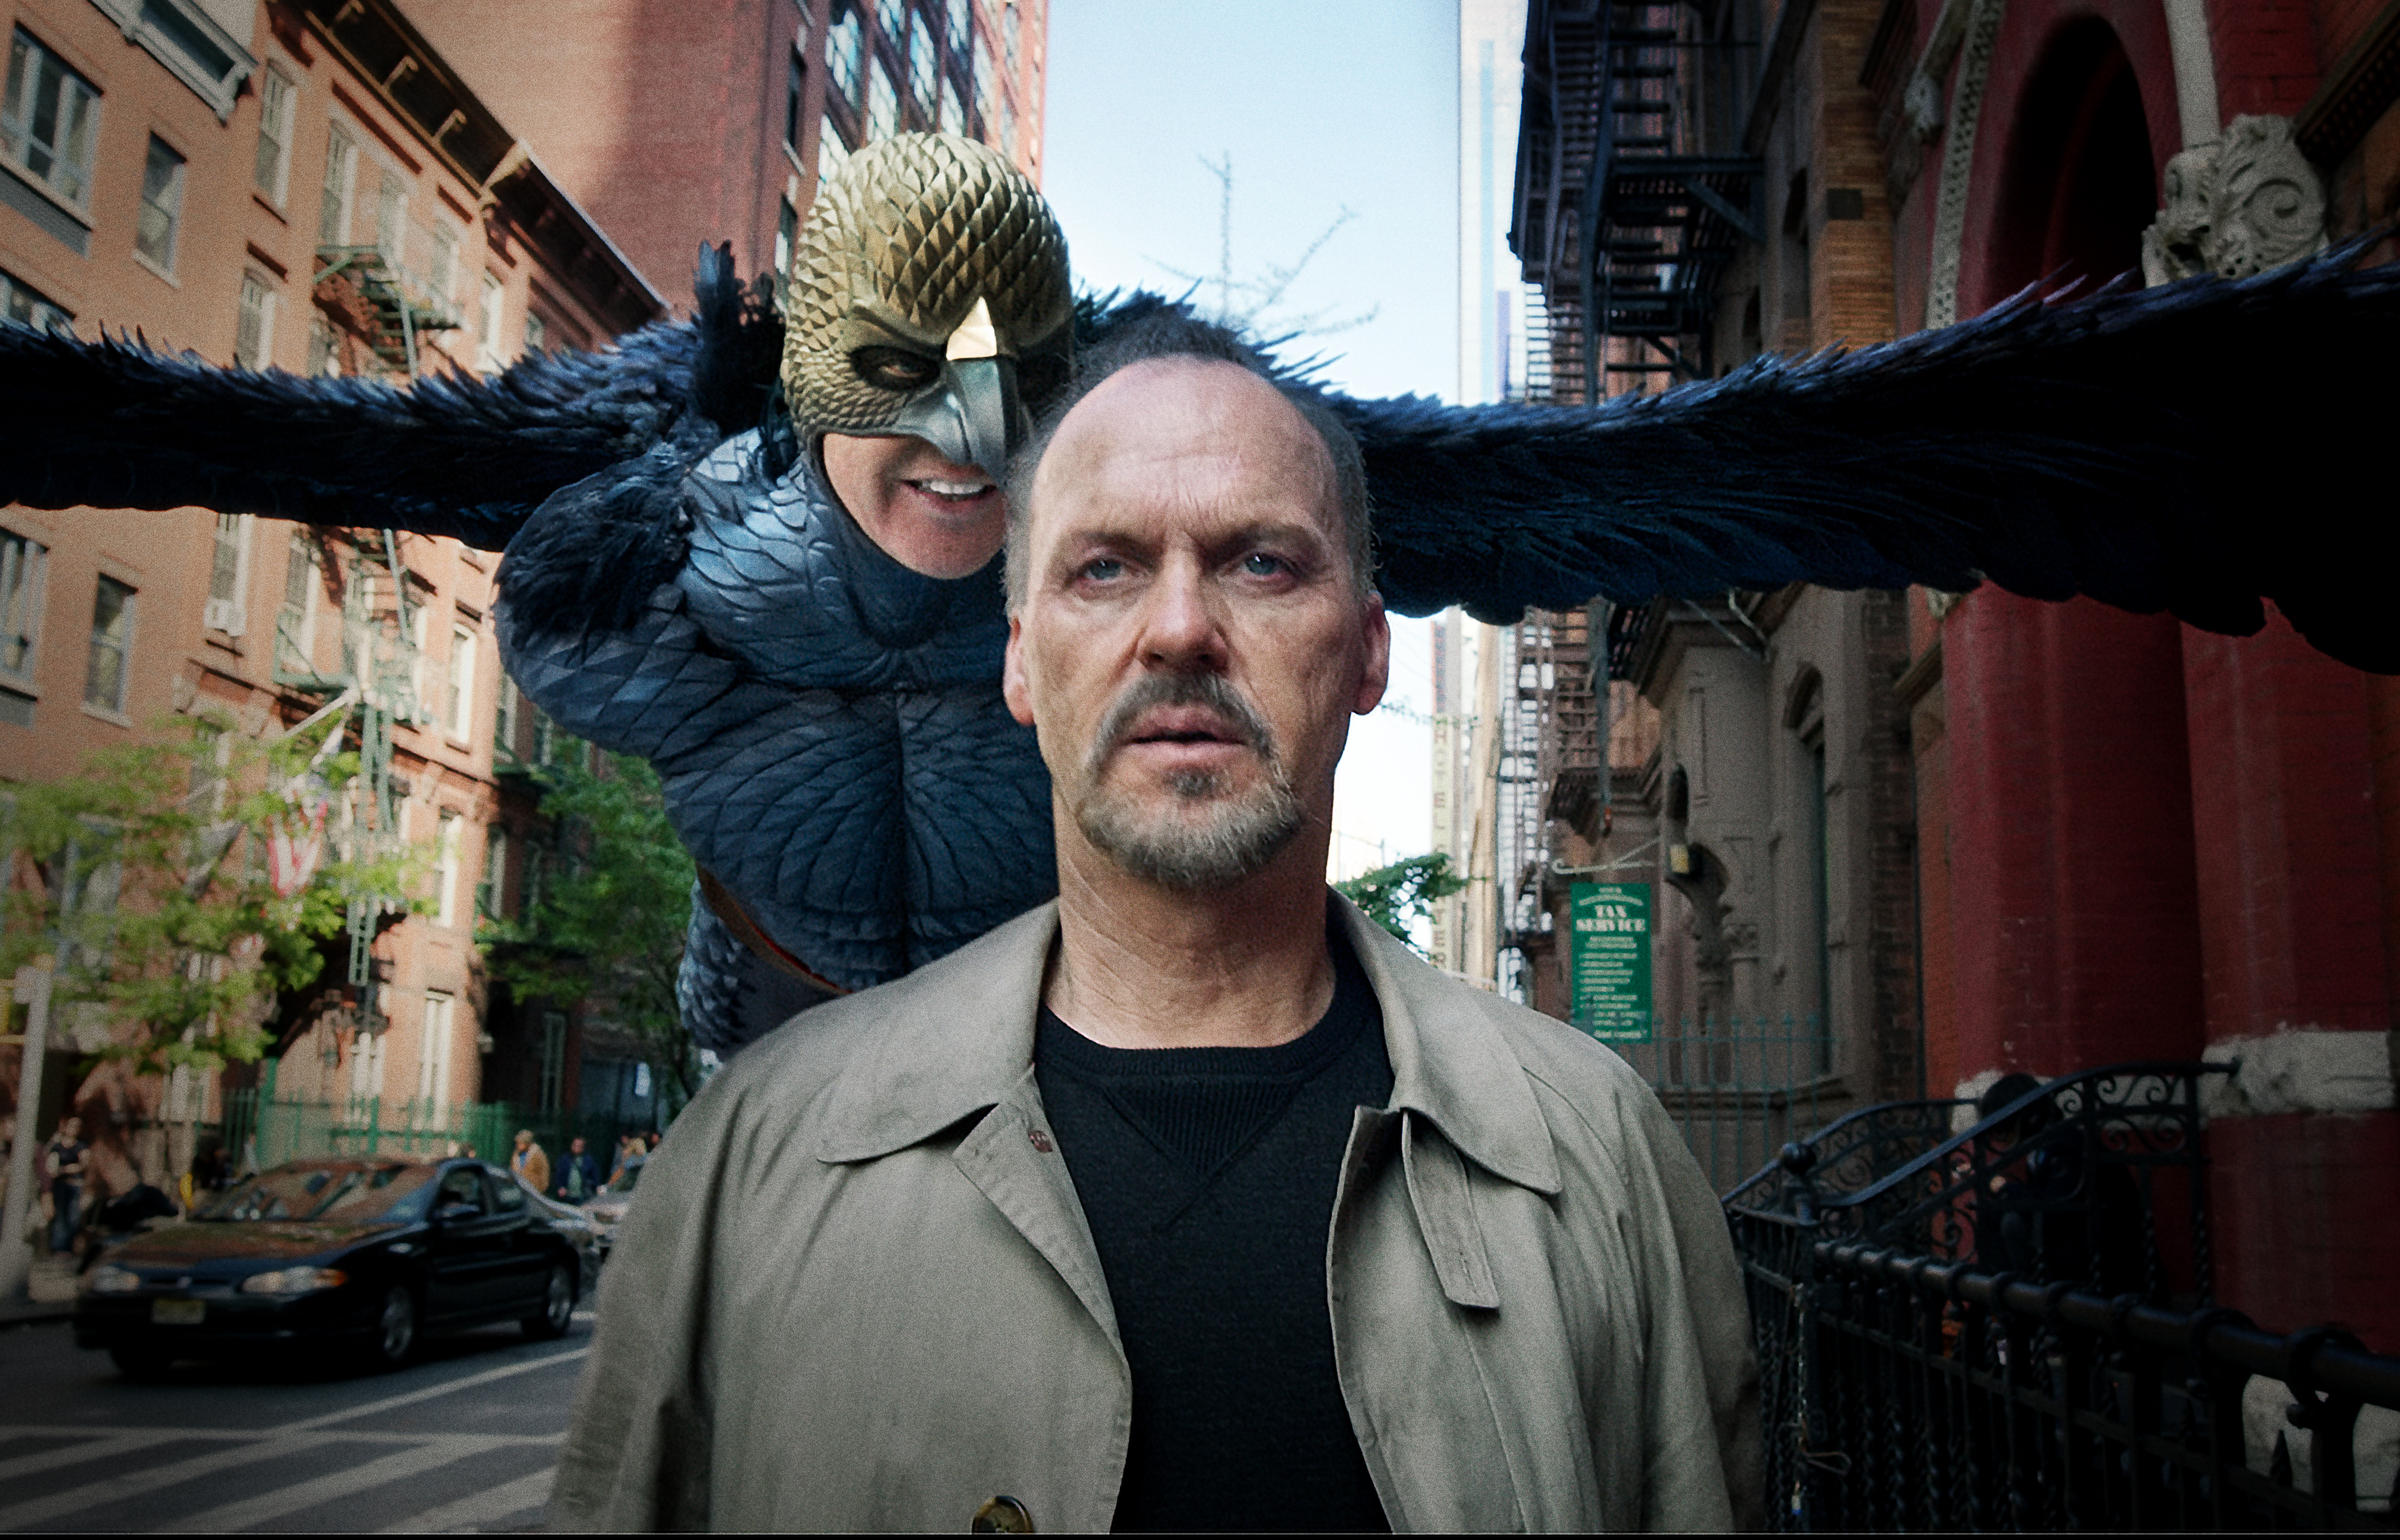 The result of the picture, for michael keaton, birdman